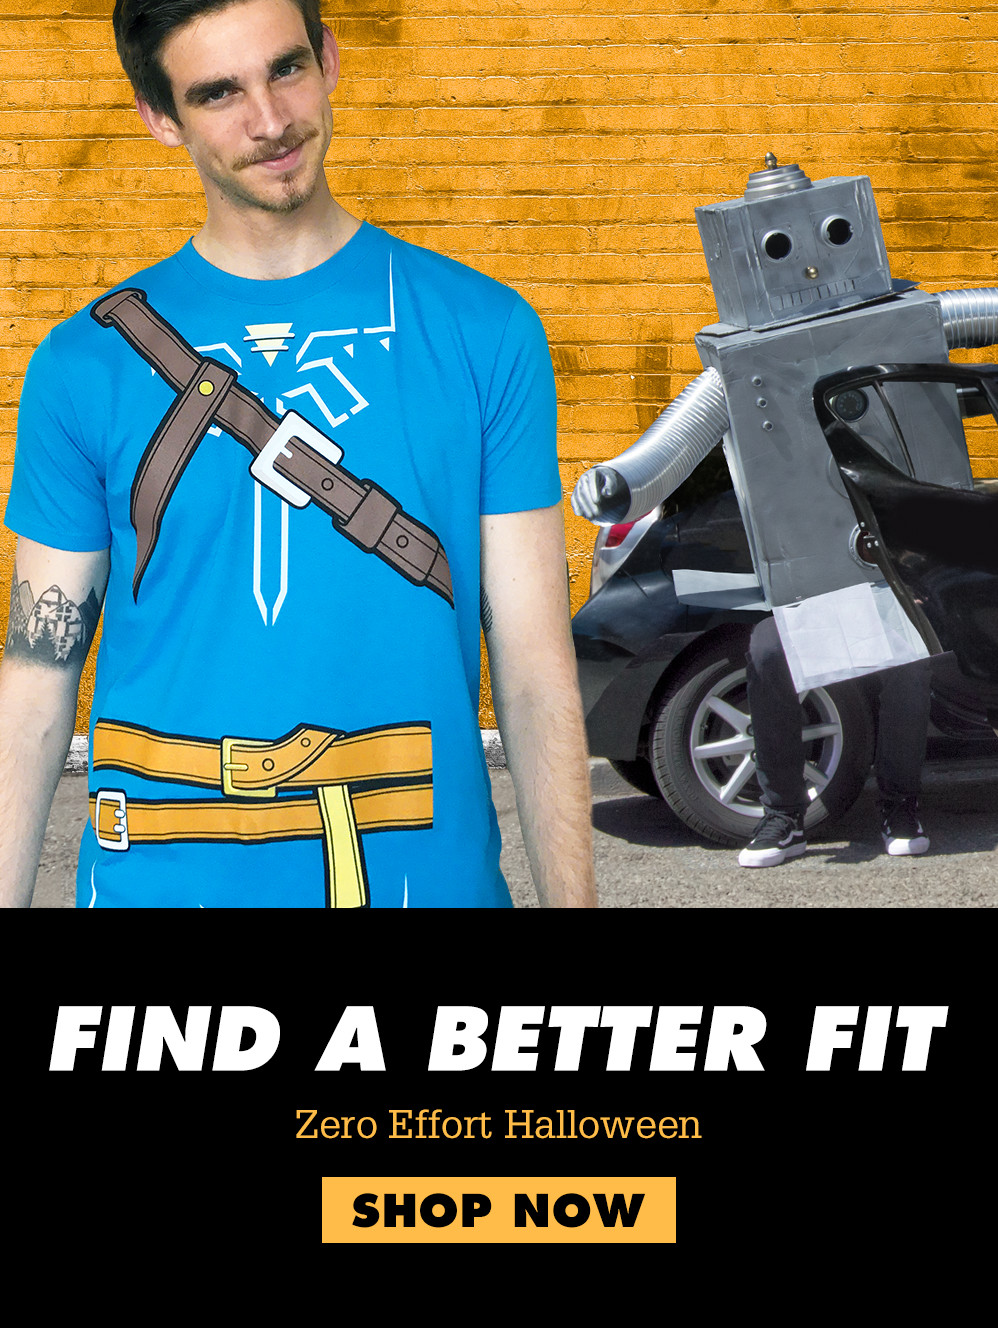 Find a Better Fit. Zero Effort Halloween. Shop Now